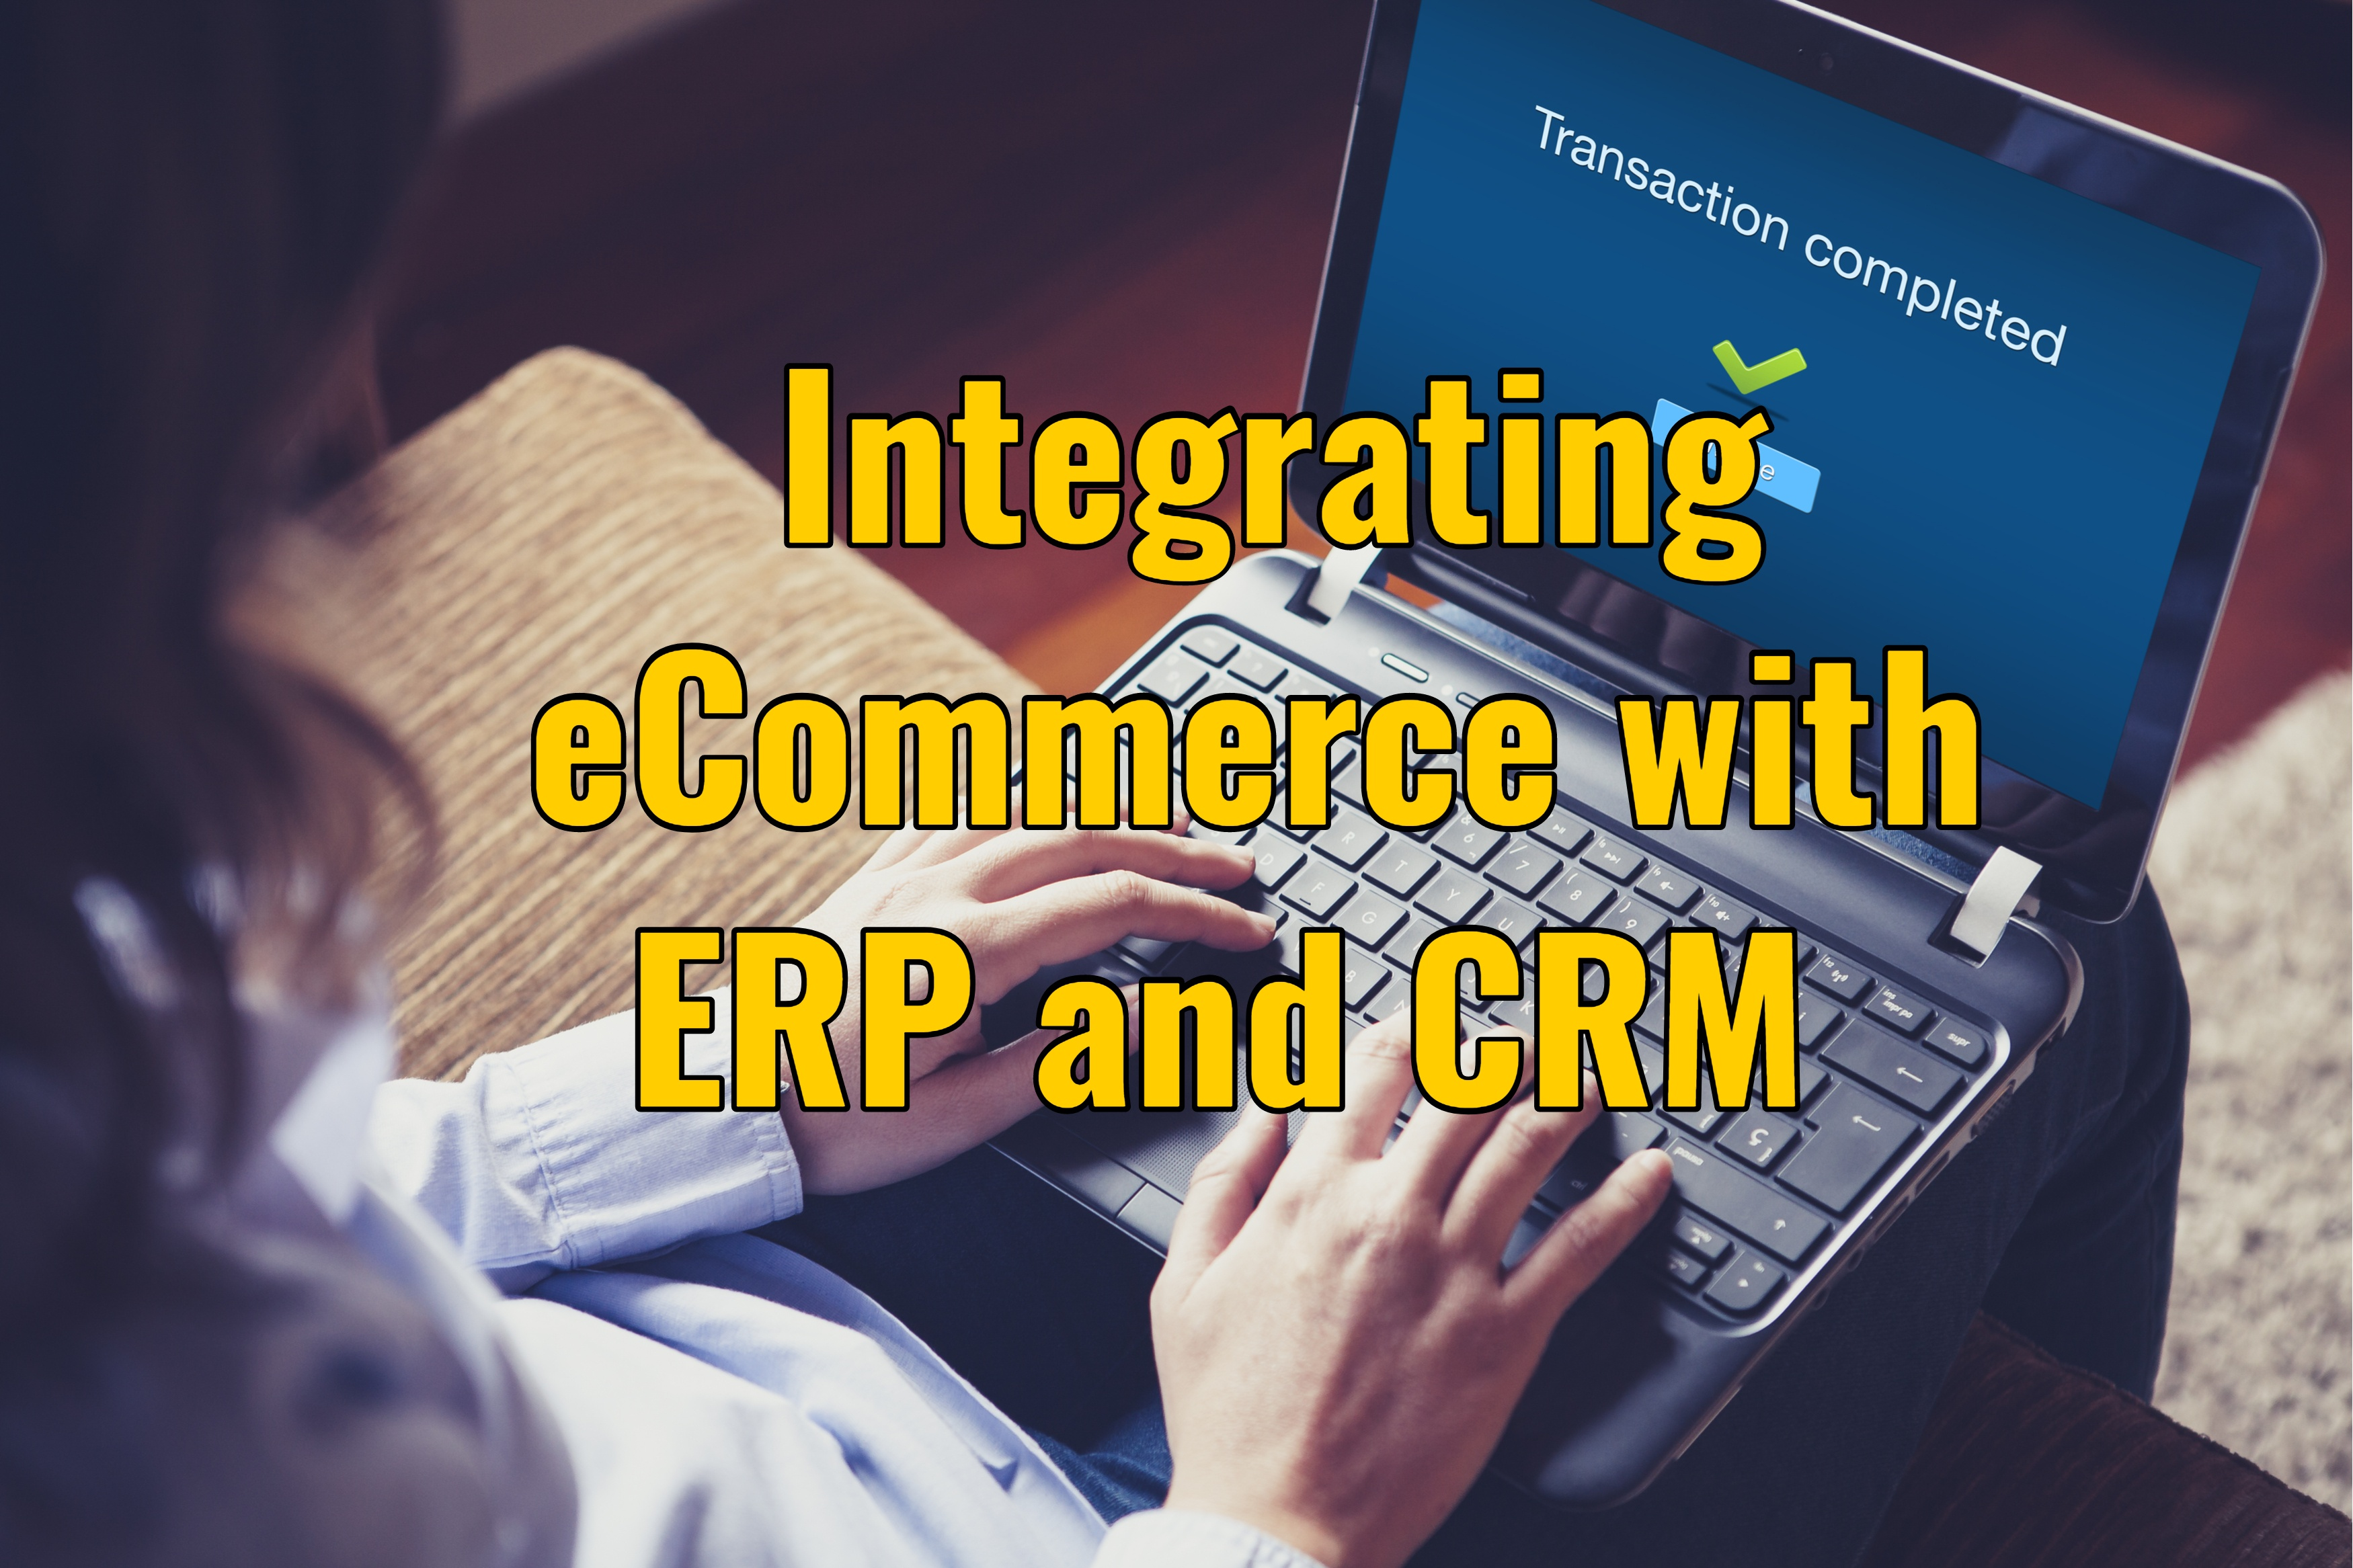 Integrating eCommerce with ERP and CRM